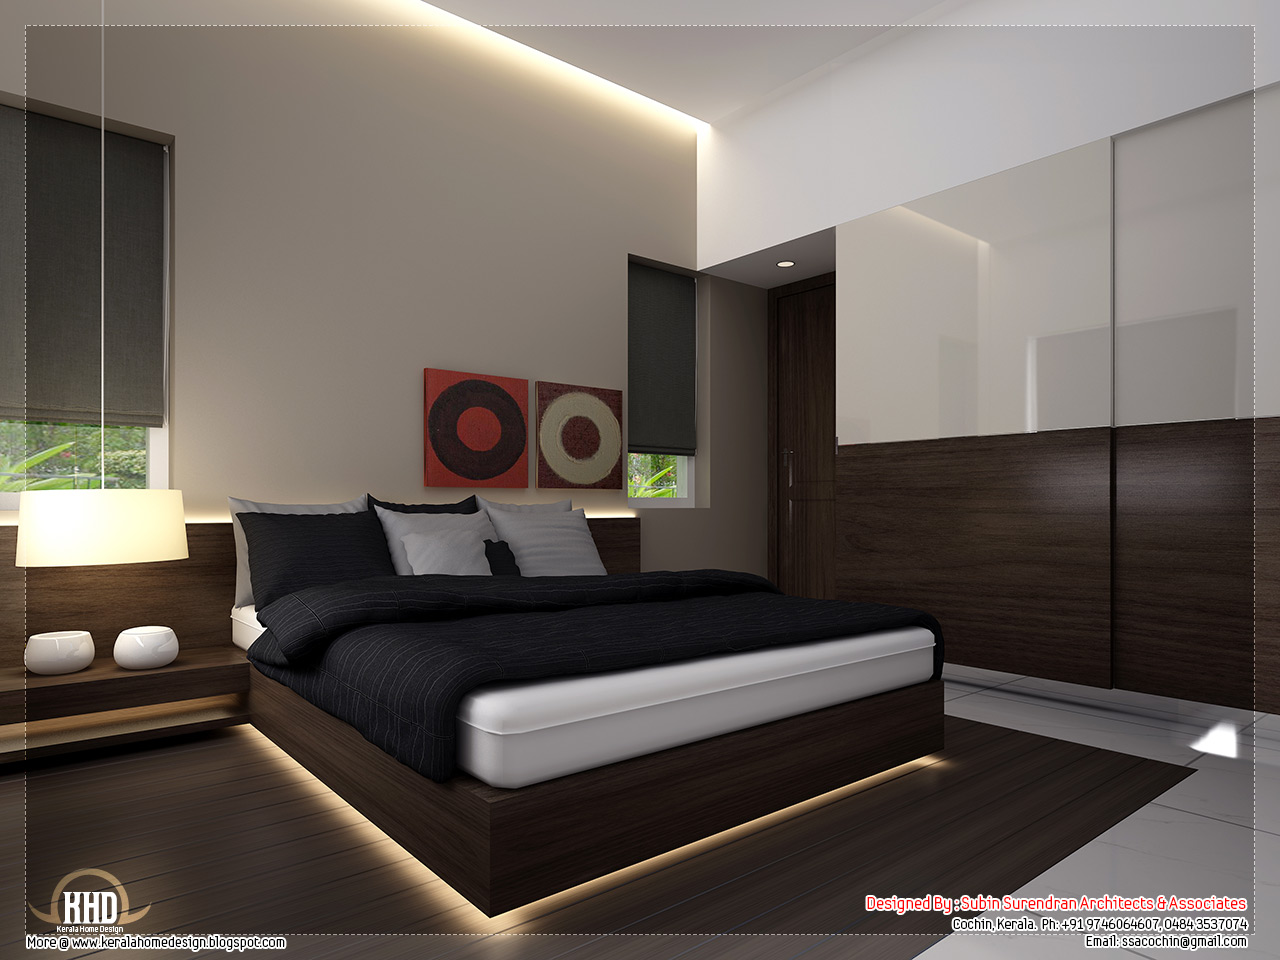 bedroom-interior-02.jpg